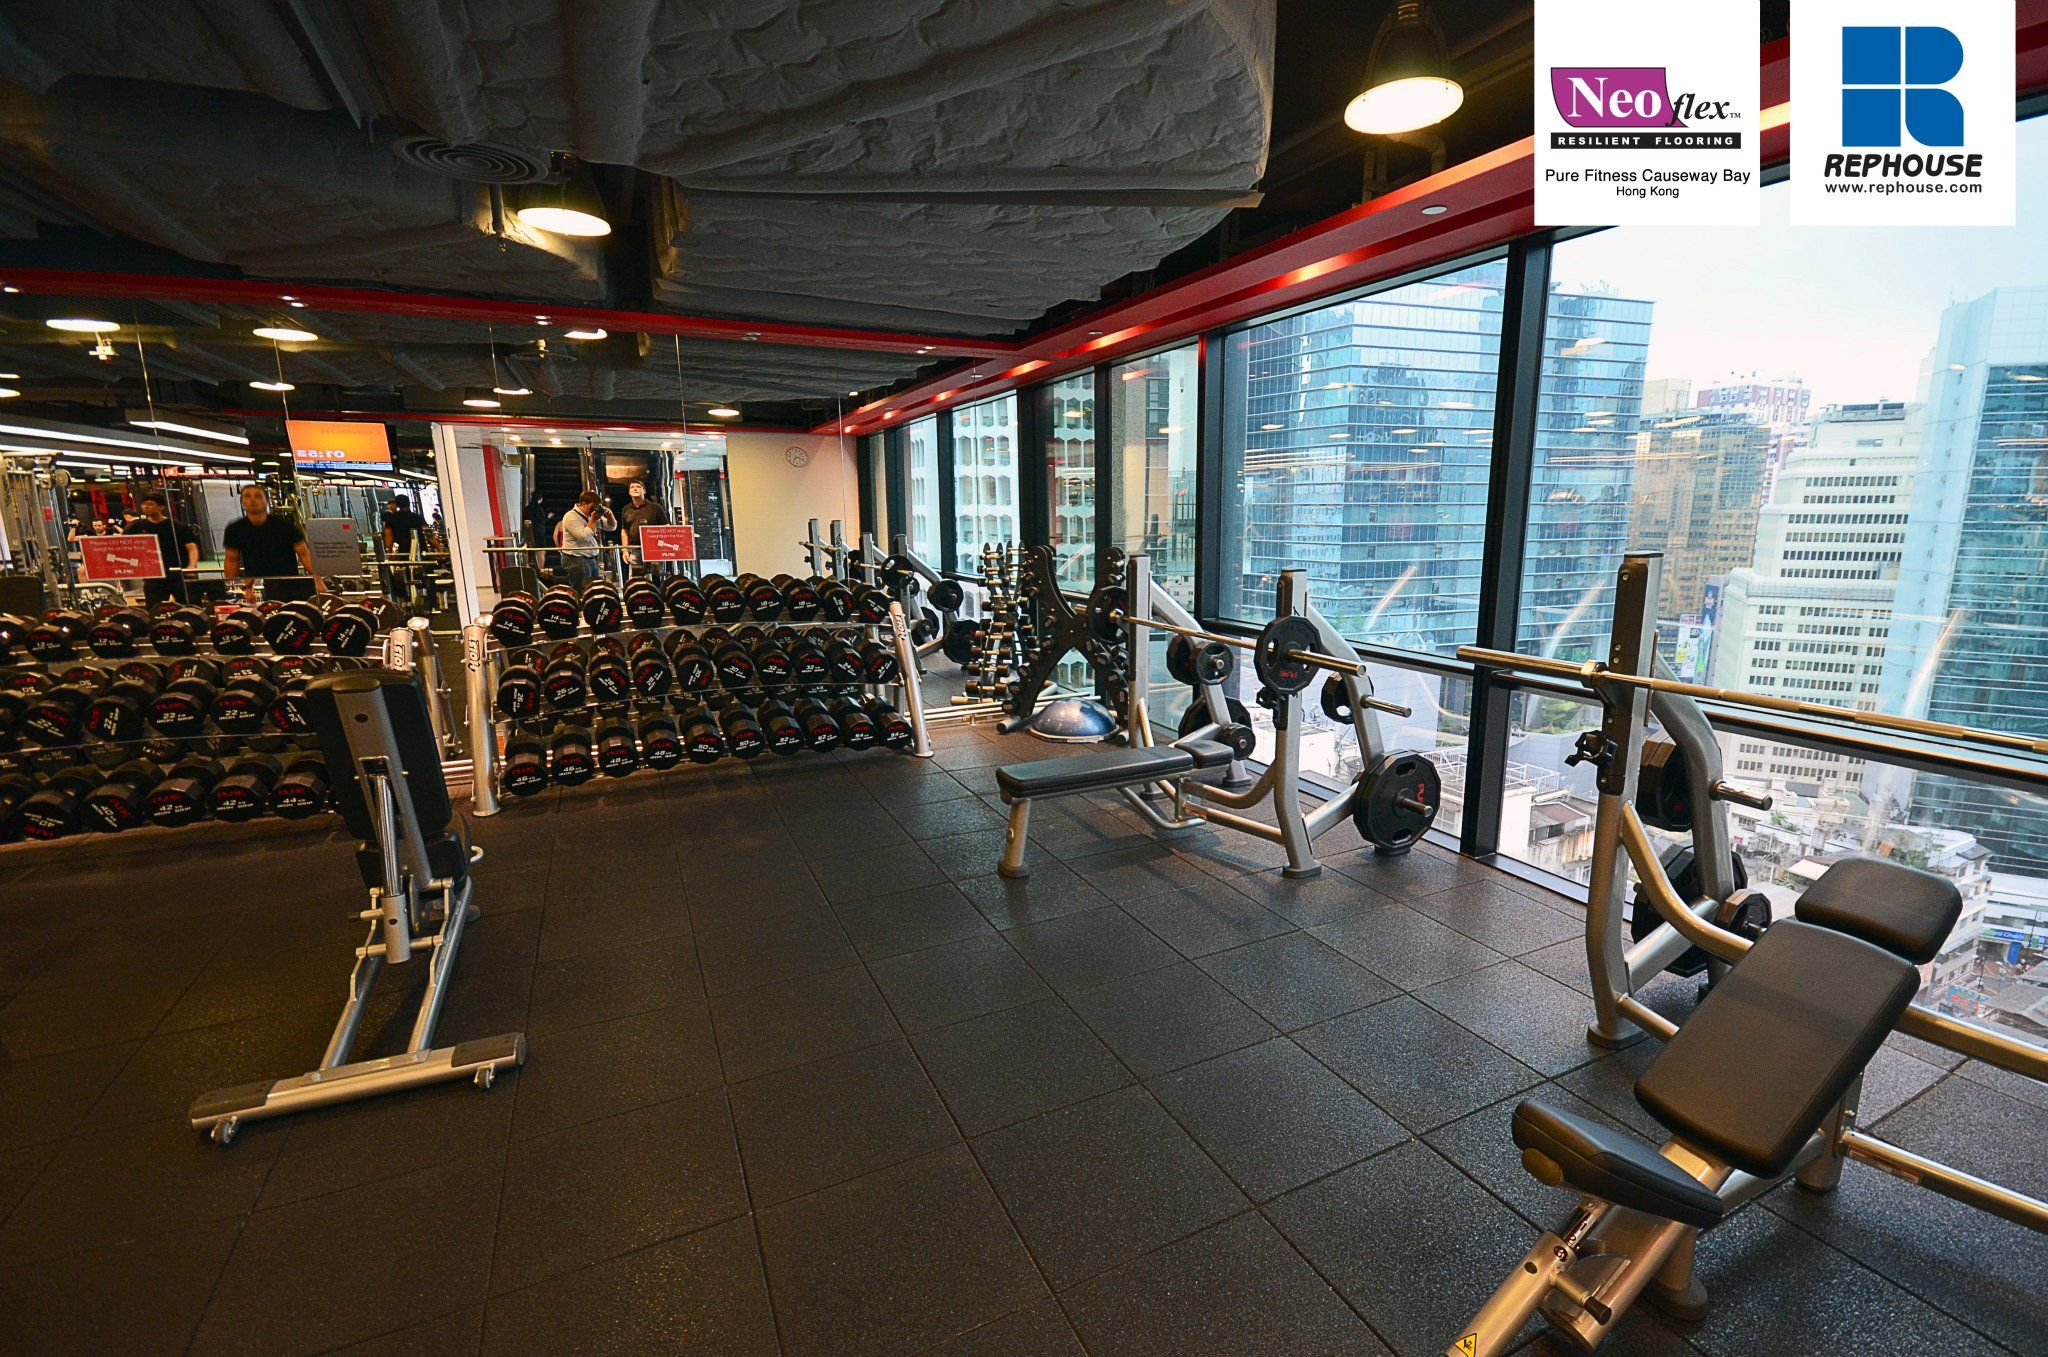 Neoflex Reco Series Rubber Fitness Flooring Pure Fitness Causeway Bay Hong Kong Floor Workouts Rubber Exercise Flooring Commercial Fitness